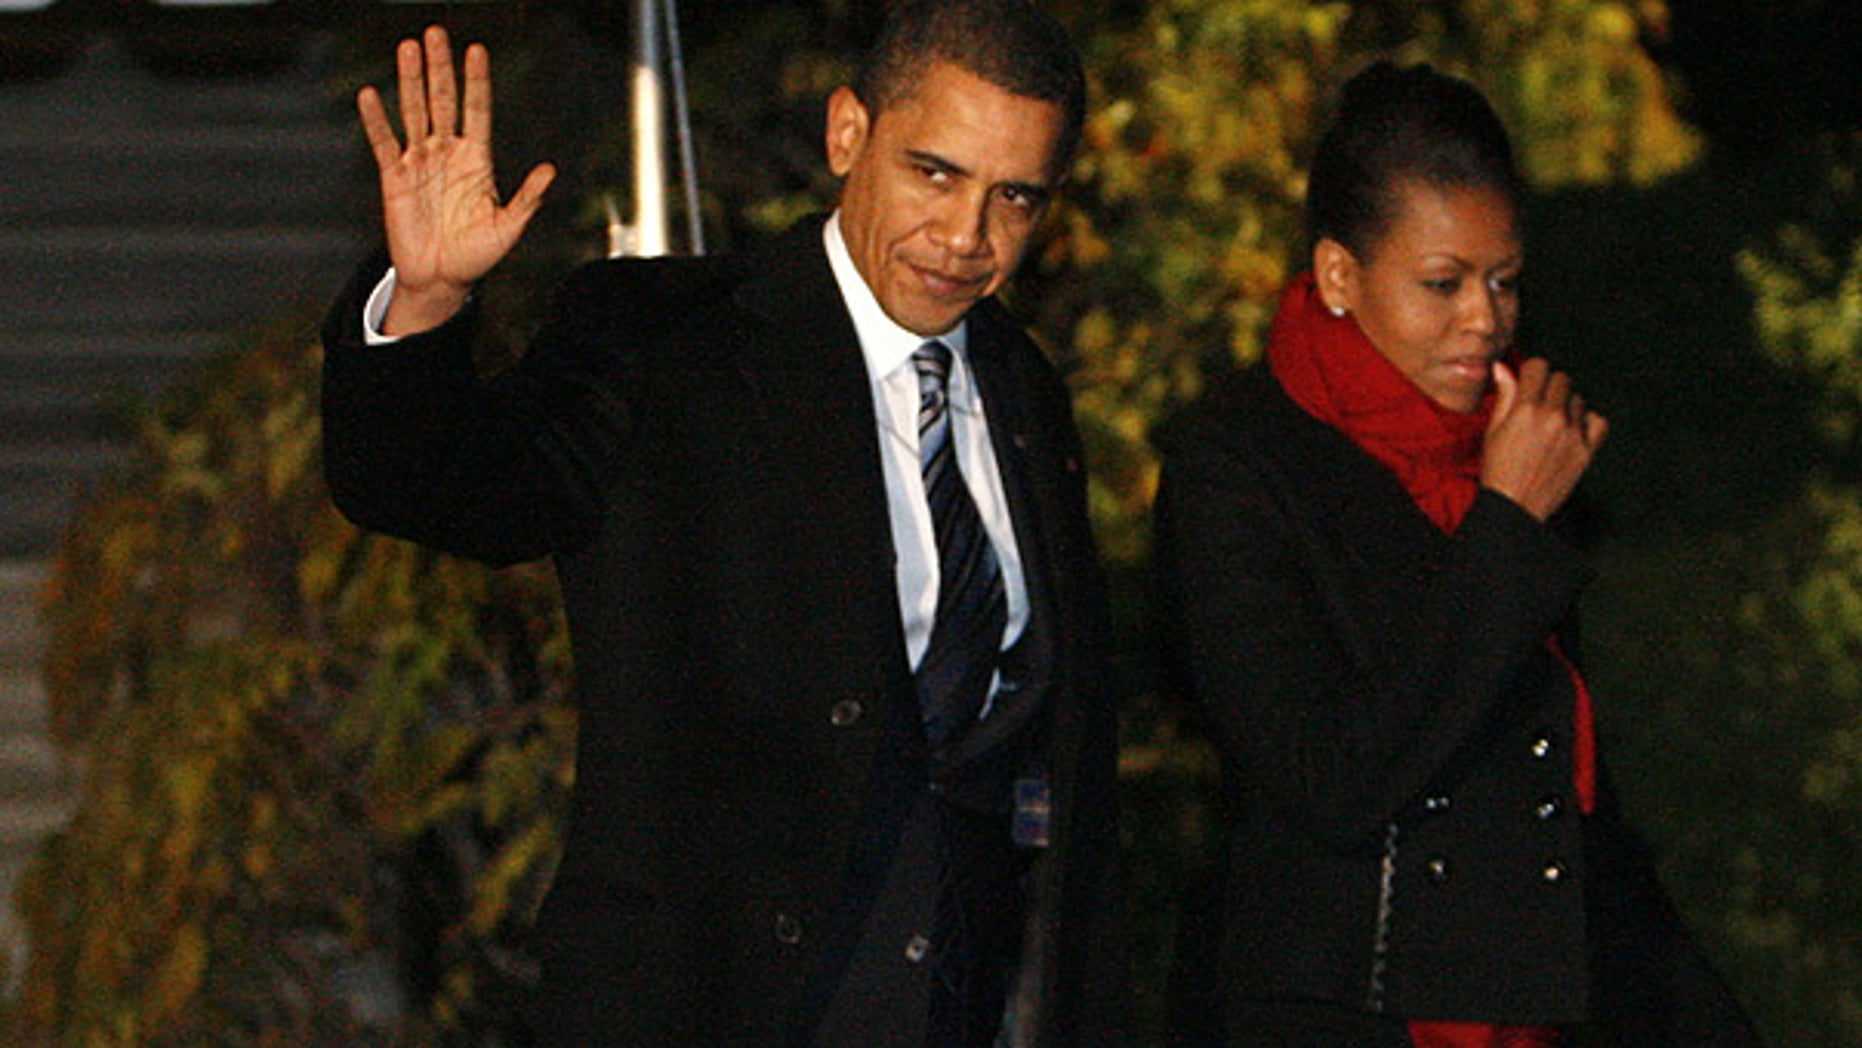 Dec. 9: President Obama and first lady Michelle Obama depart the White House en route to Oslo, Norway. (AP)